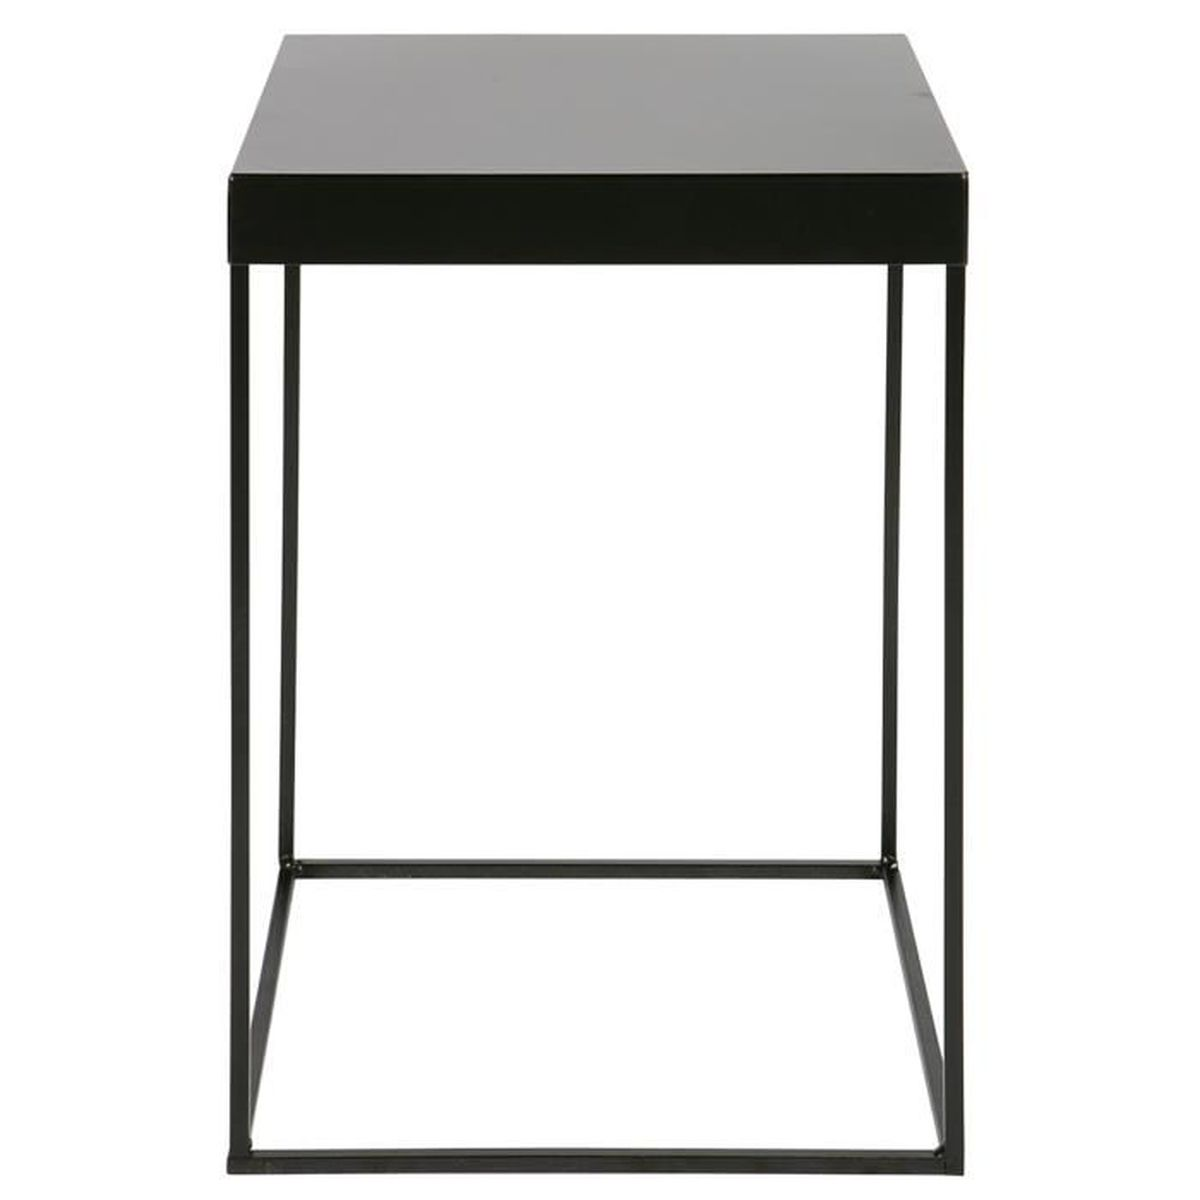 table d 39 appoint en m tal coloris noir dim l30 x p30 x h45 cm achat vente console. Black Bedroom Furniture Sets. Home Design Ideas